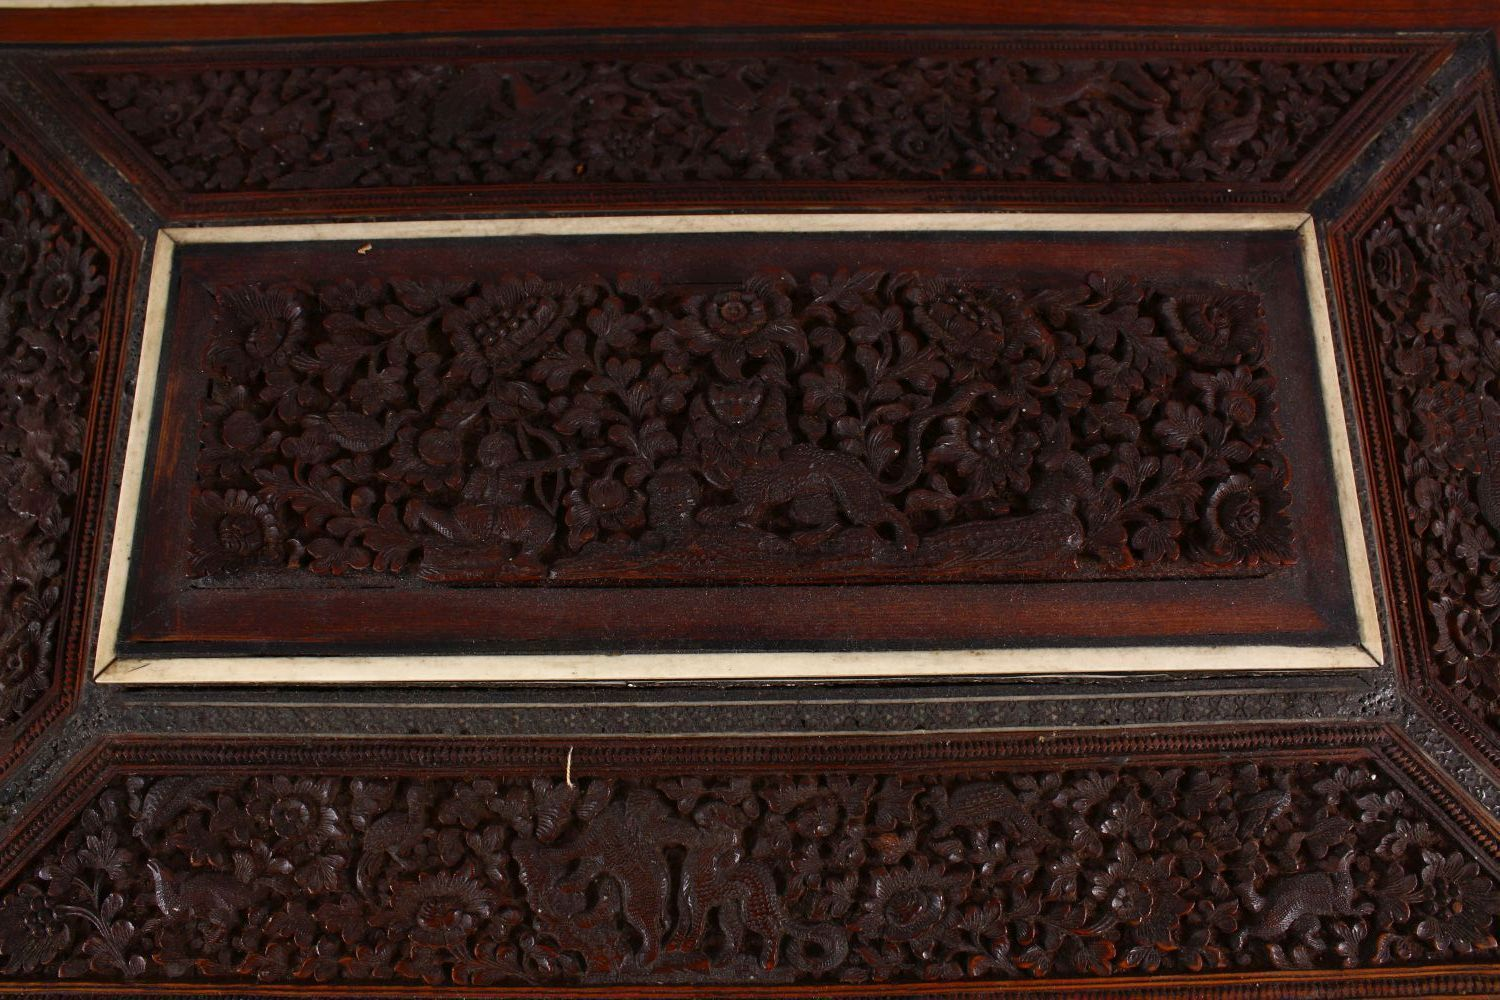 A 19TH CENTURY ANGLO INDIAN INLAID LIDDED SEWING BOX, with carved wood depicting figures and animals - Image 8 of 10